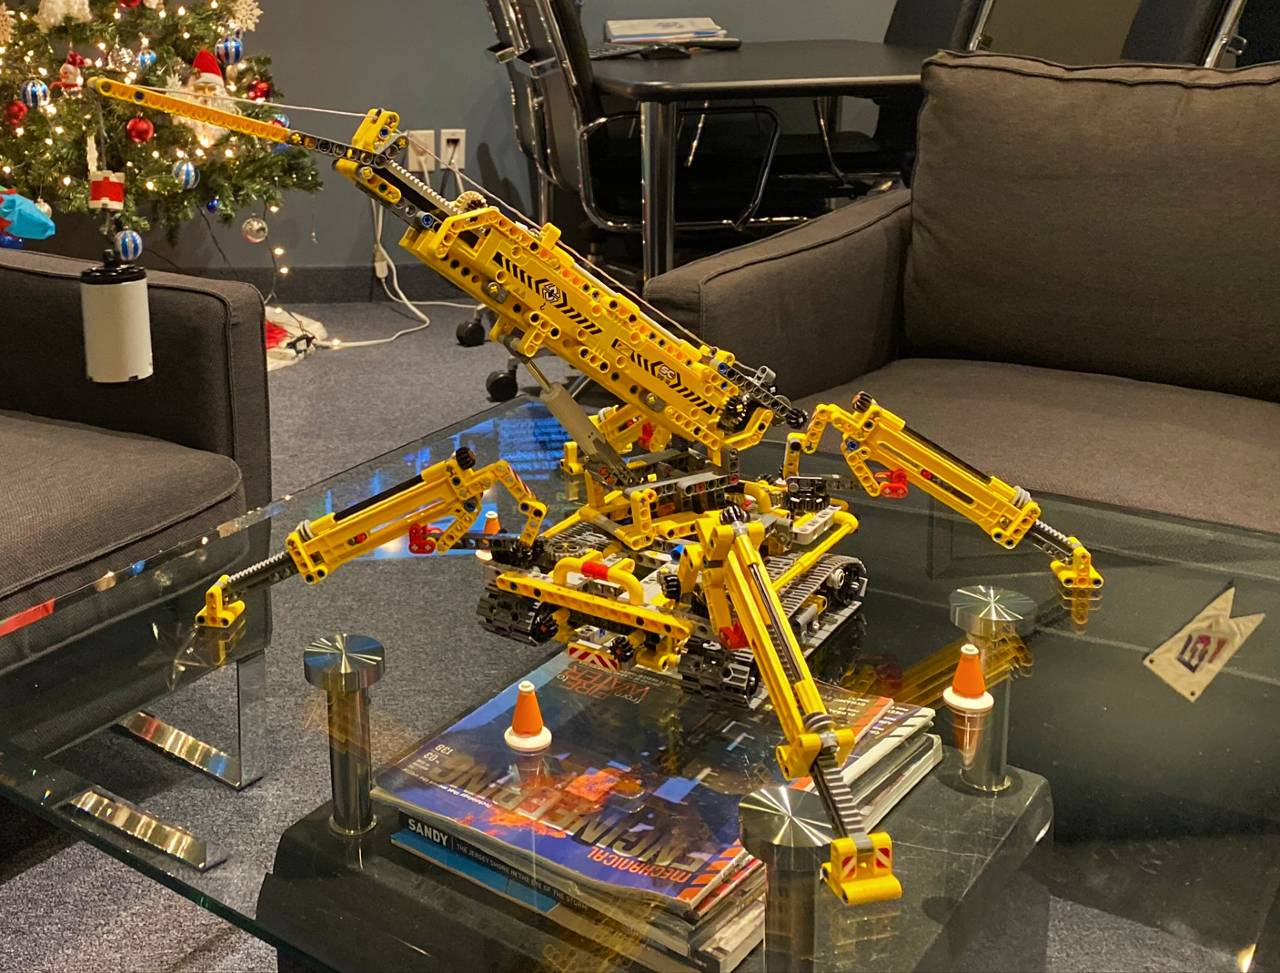 Lego Crane Set Assembled In Office